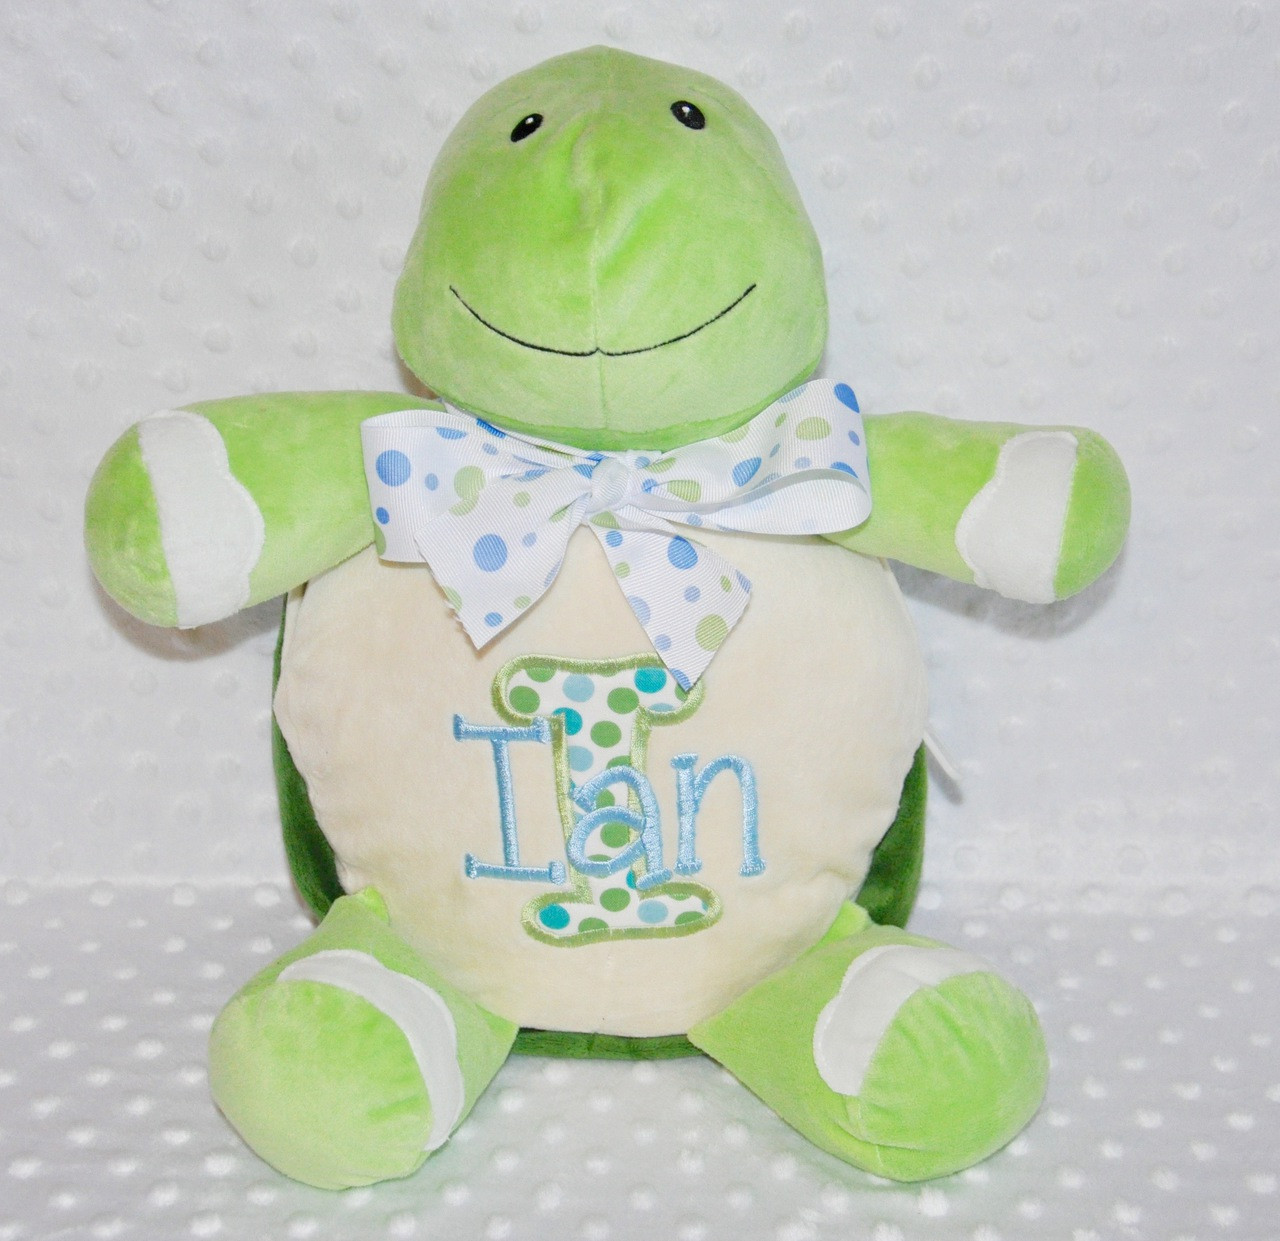 d24d57f0ad2 Personalized Stuffed Animal Cubbies - Turtle